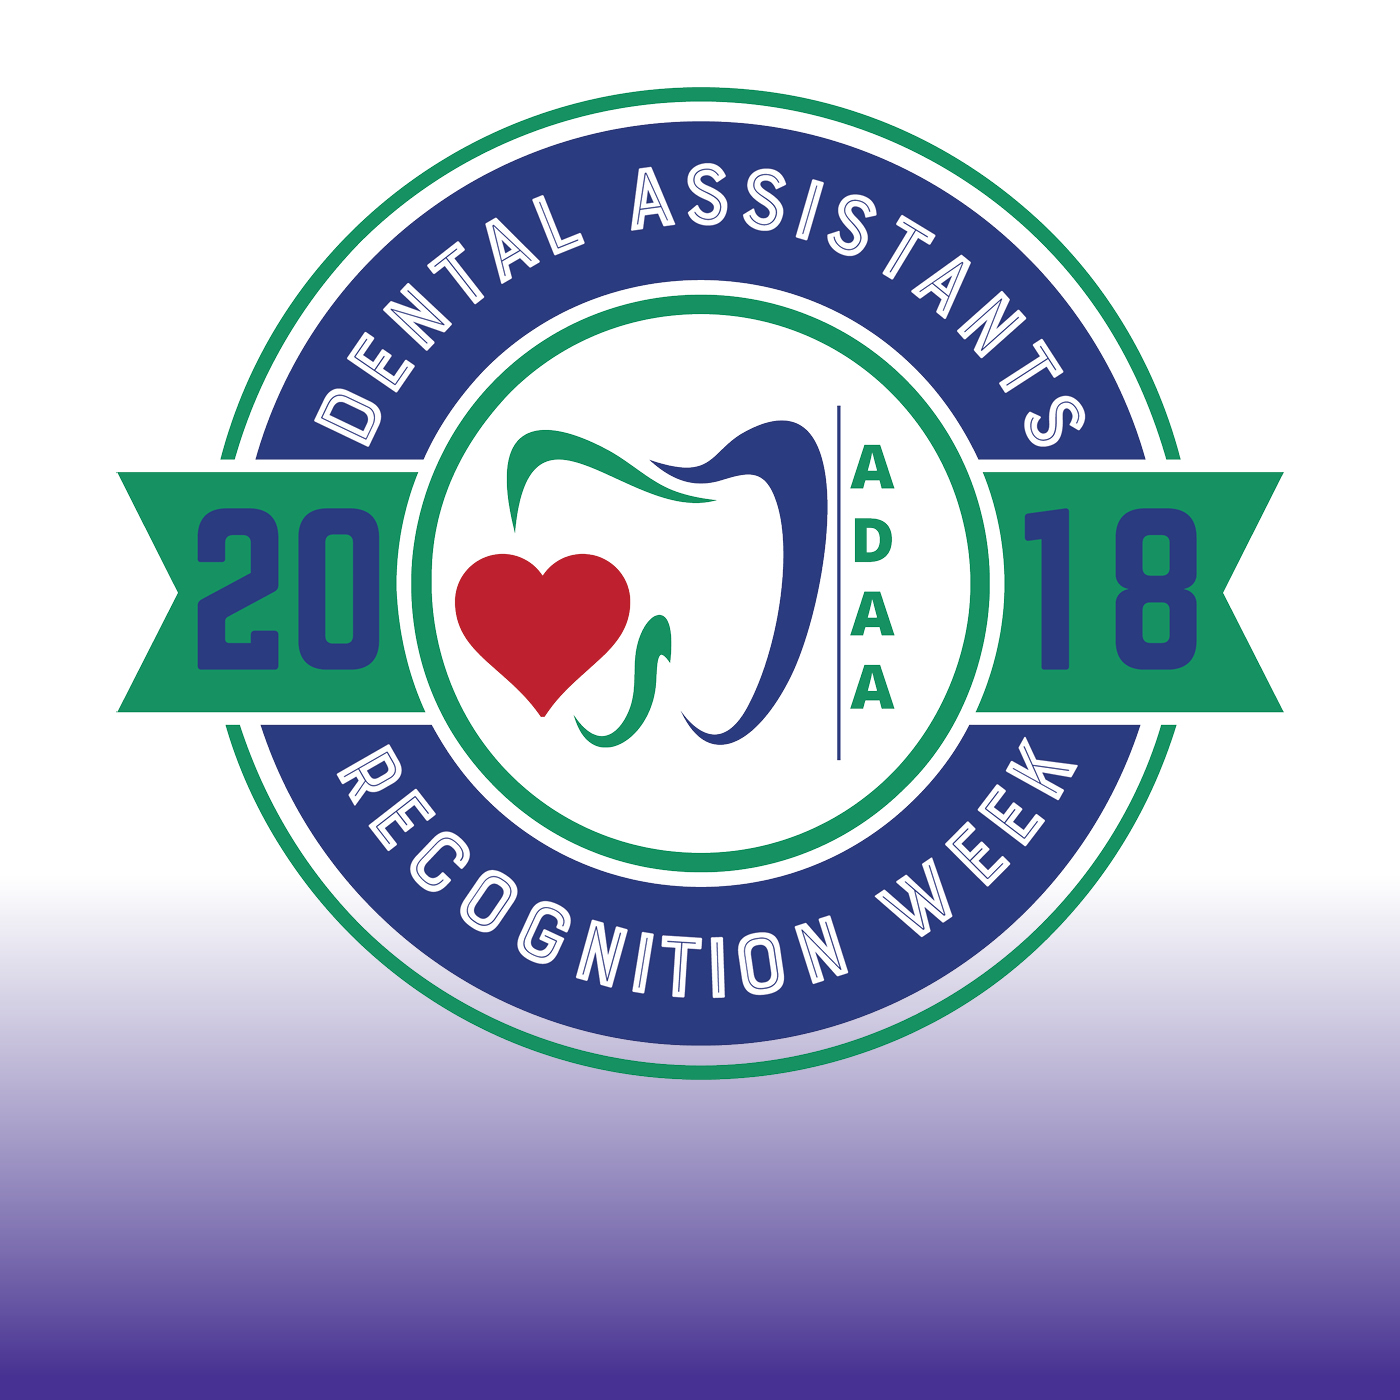 Dental Assistants Recognition Week Logo